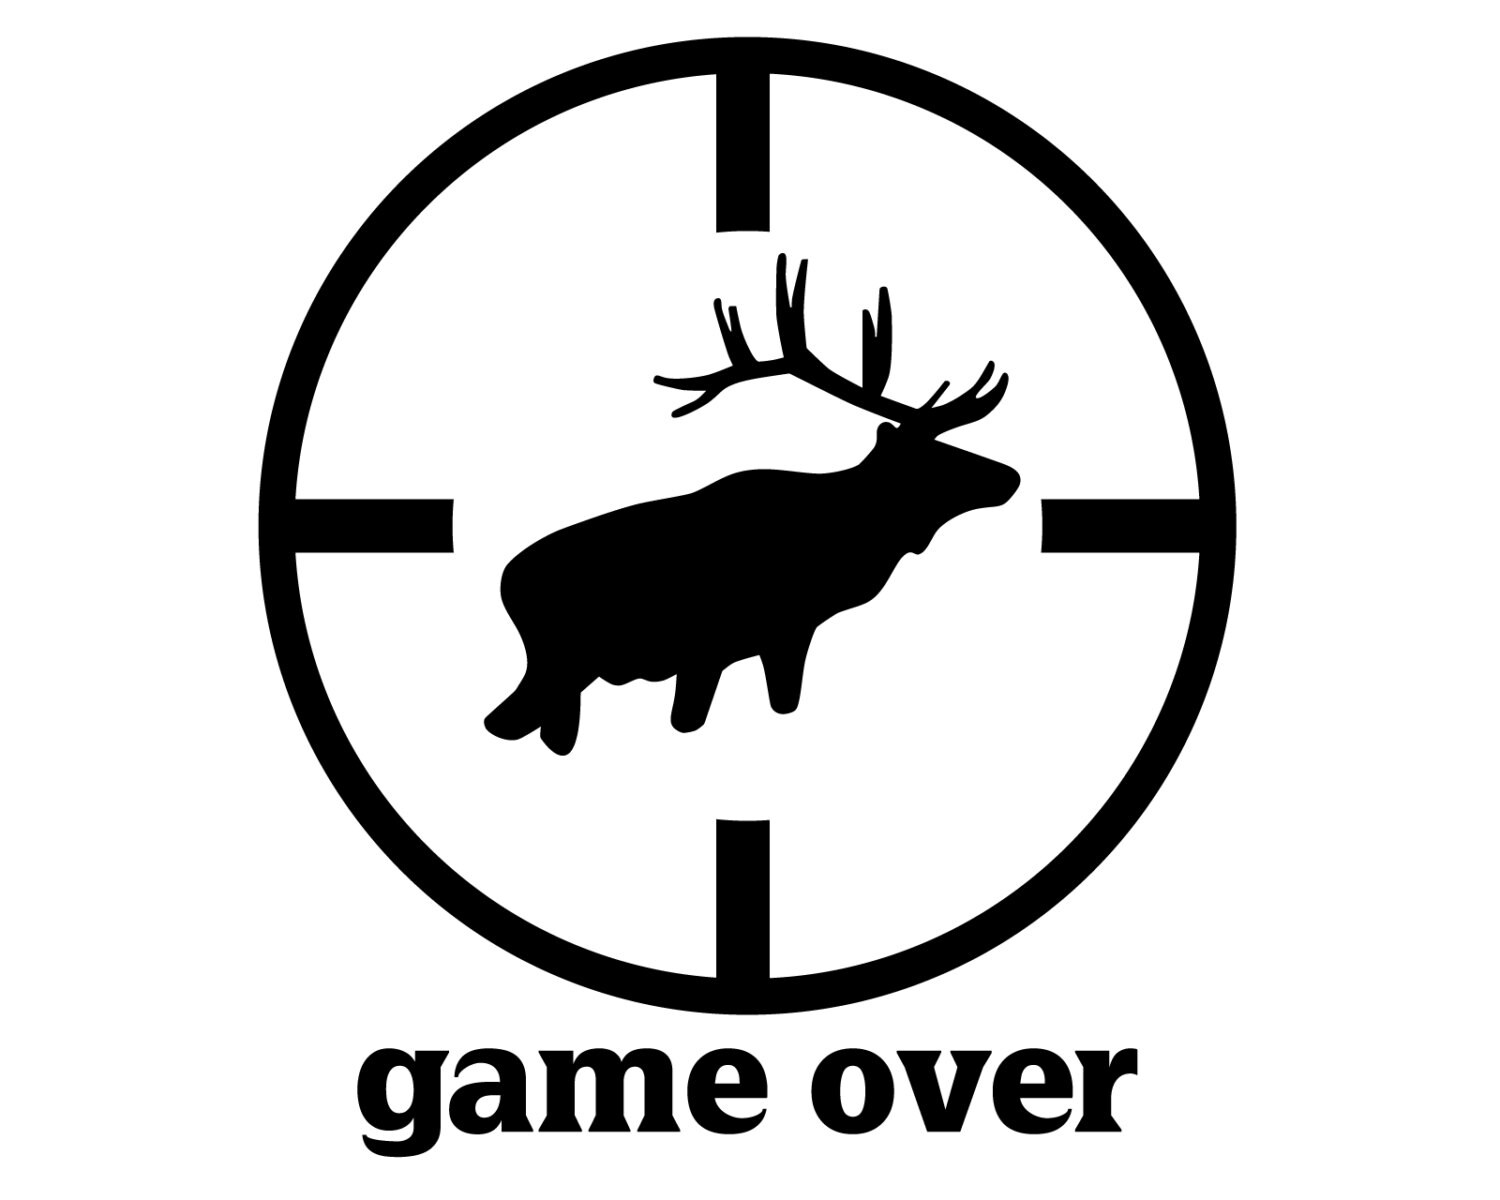 Elk hunting vinyl sticker elk hunter decal game over elk silhouette sticker